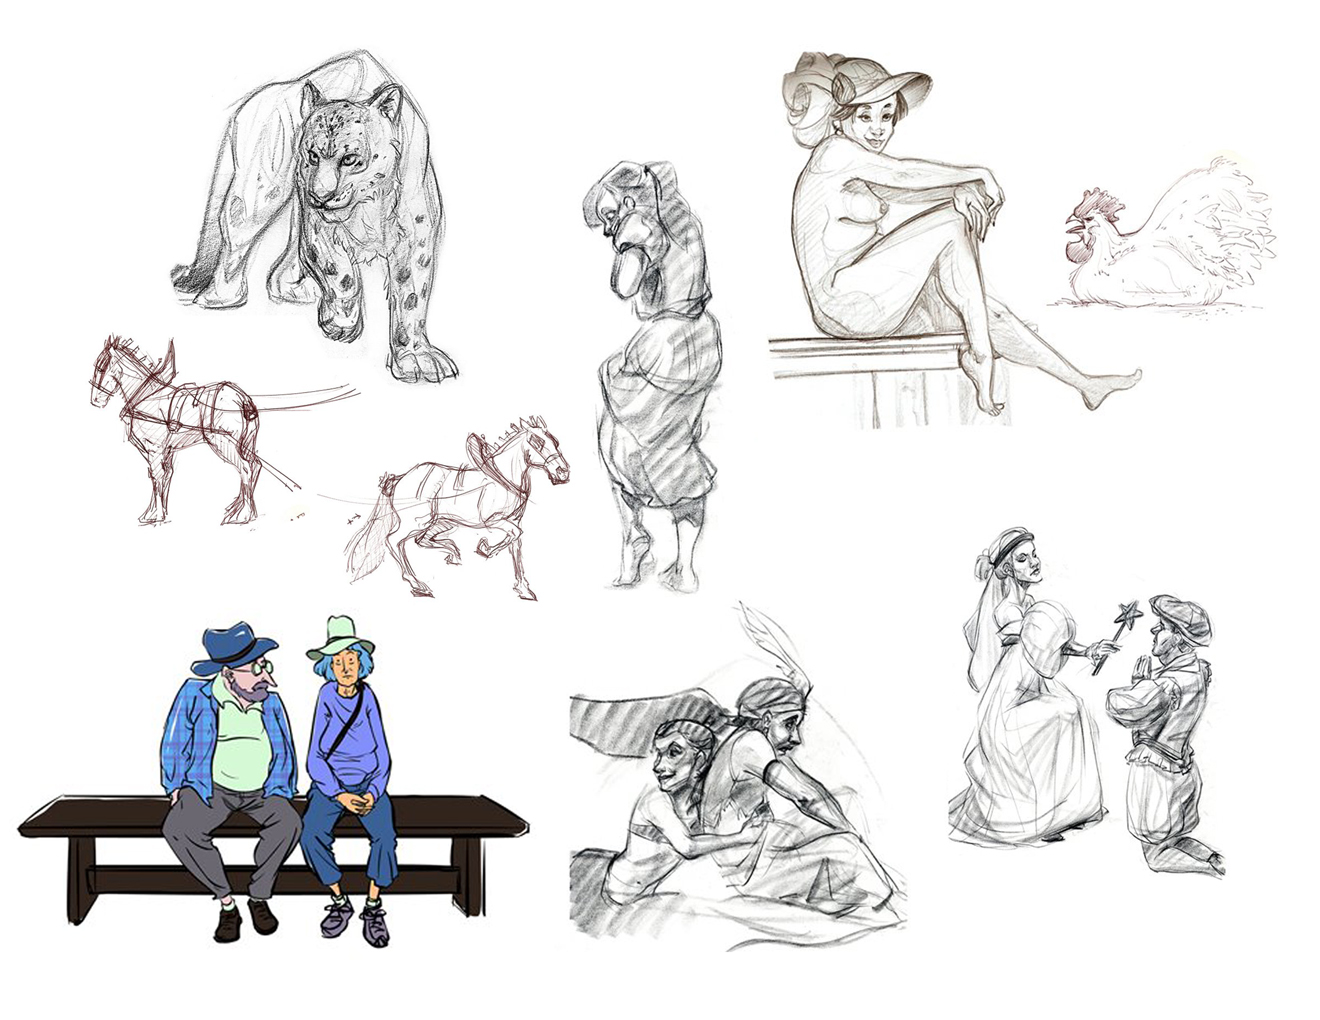 ... CHARACTERS BACKGROUNDS / SETS / PROPS LIFE DRAWING MORE CONTACT